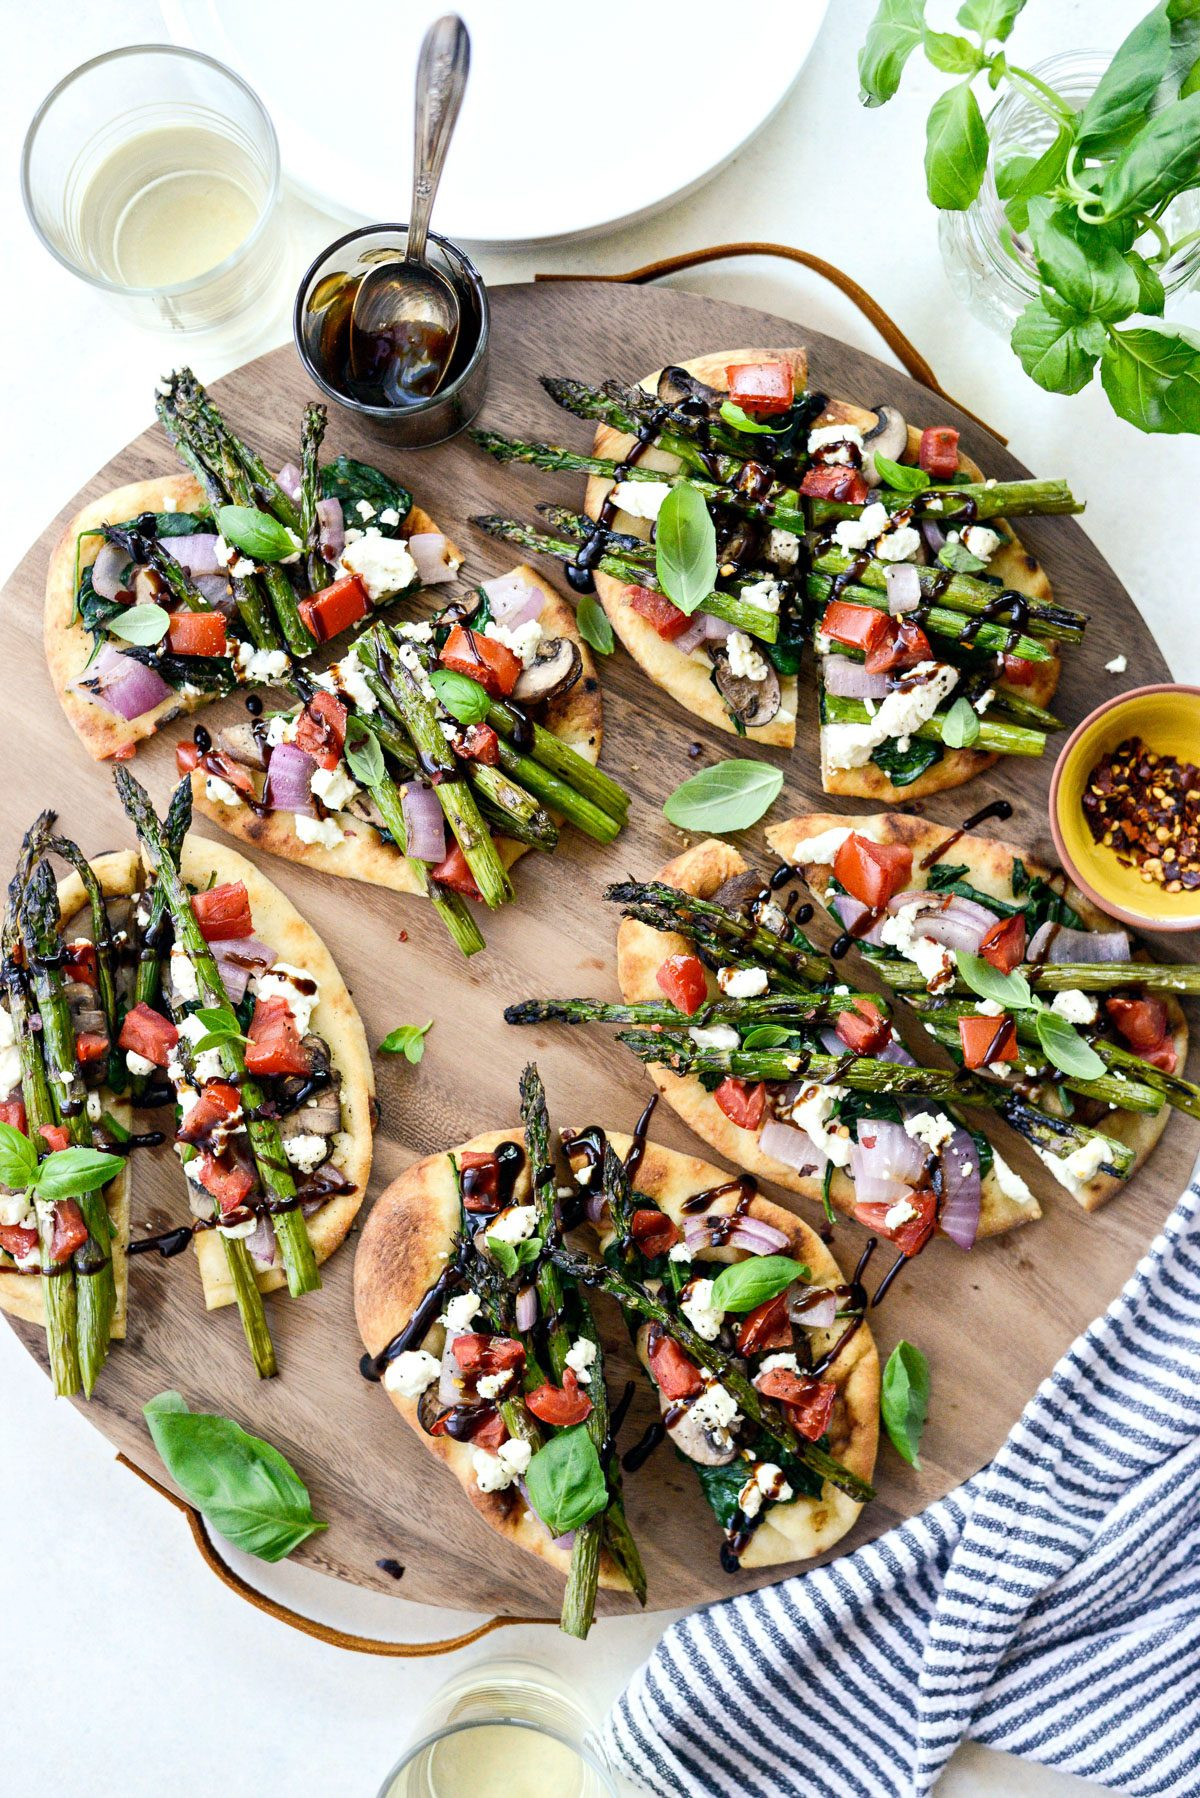 Vegetable and Goat Cheese Flatbread l SimplyScratch.com #grilling #grillingrecipe #vegetable #flatbread #asparagus #goatcheese #easyrecipe